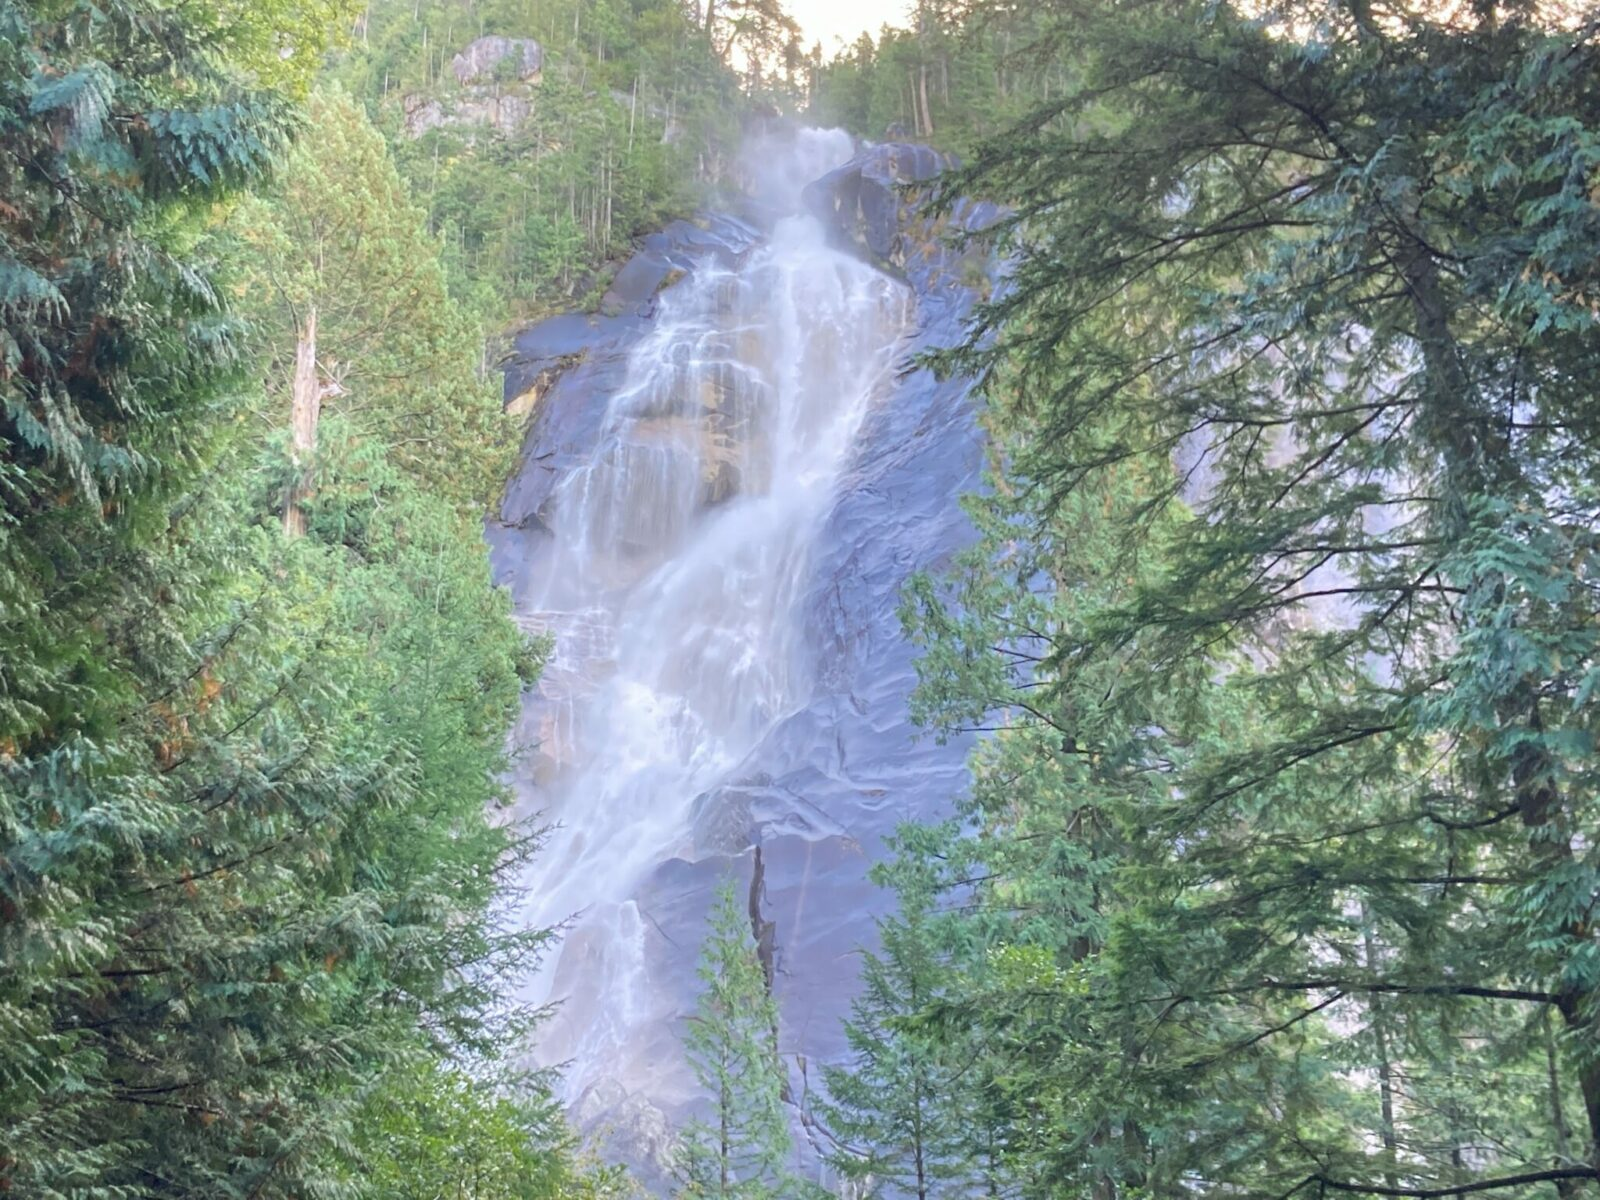 A high waterfall crashing down a rock face in the forest